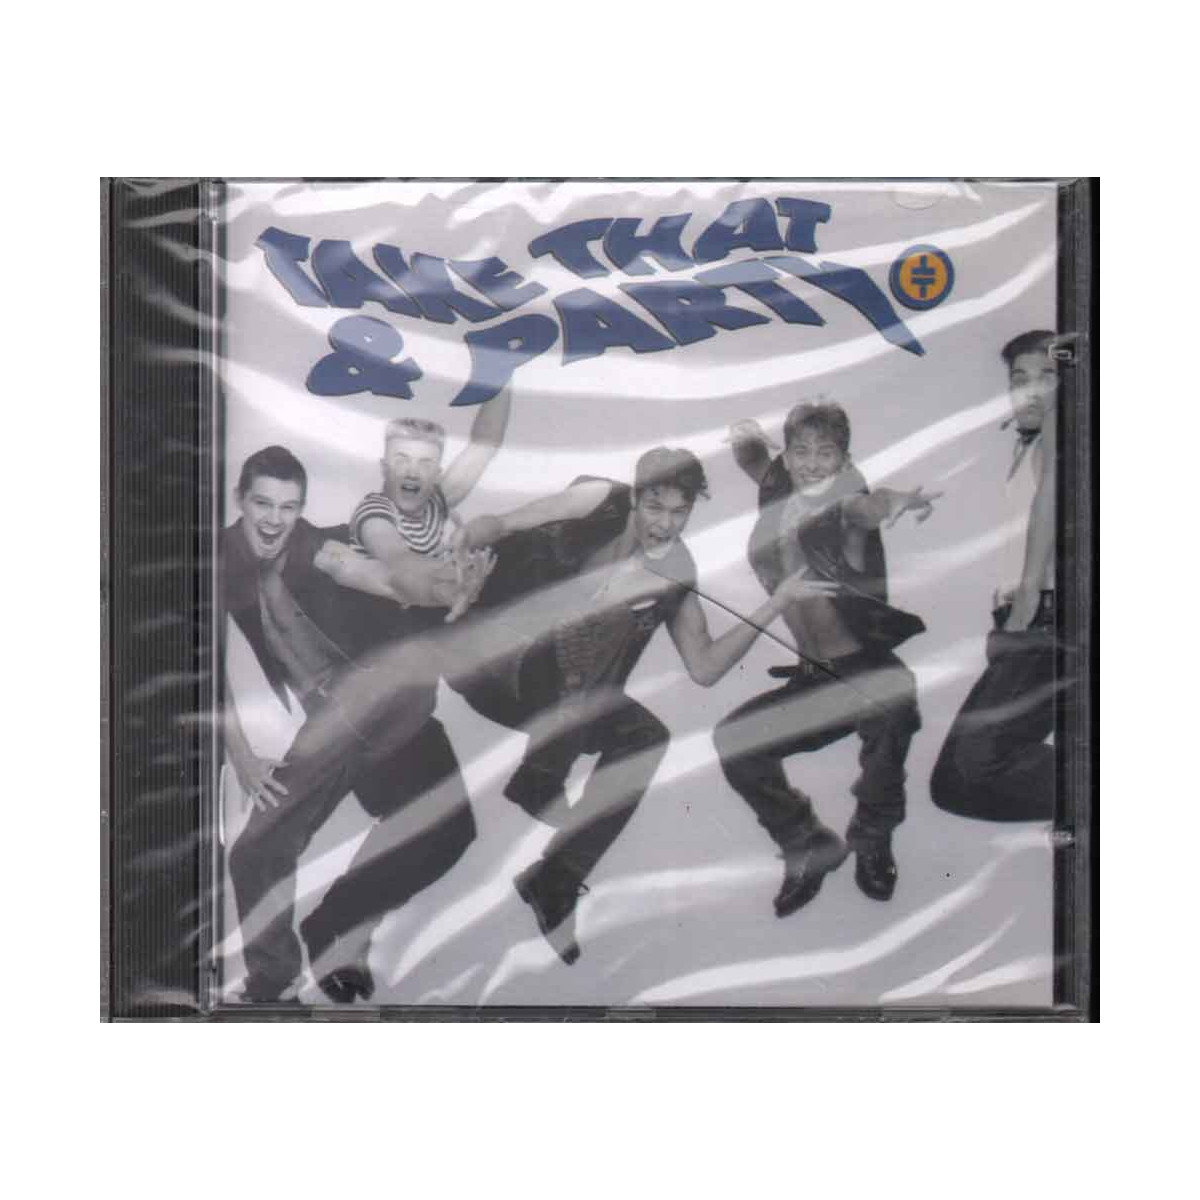 "Take That CD Take That & Party RCA -"" 74321109232 Sigillato 0743211092326"